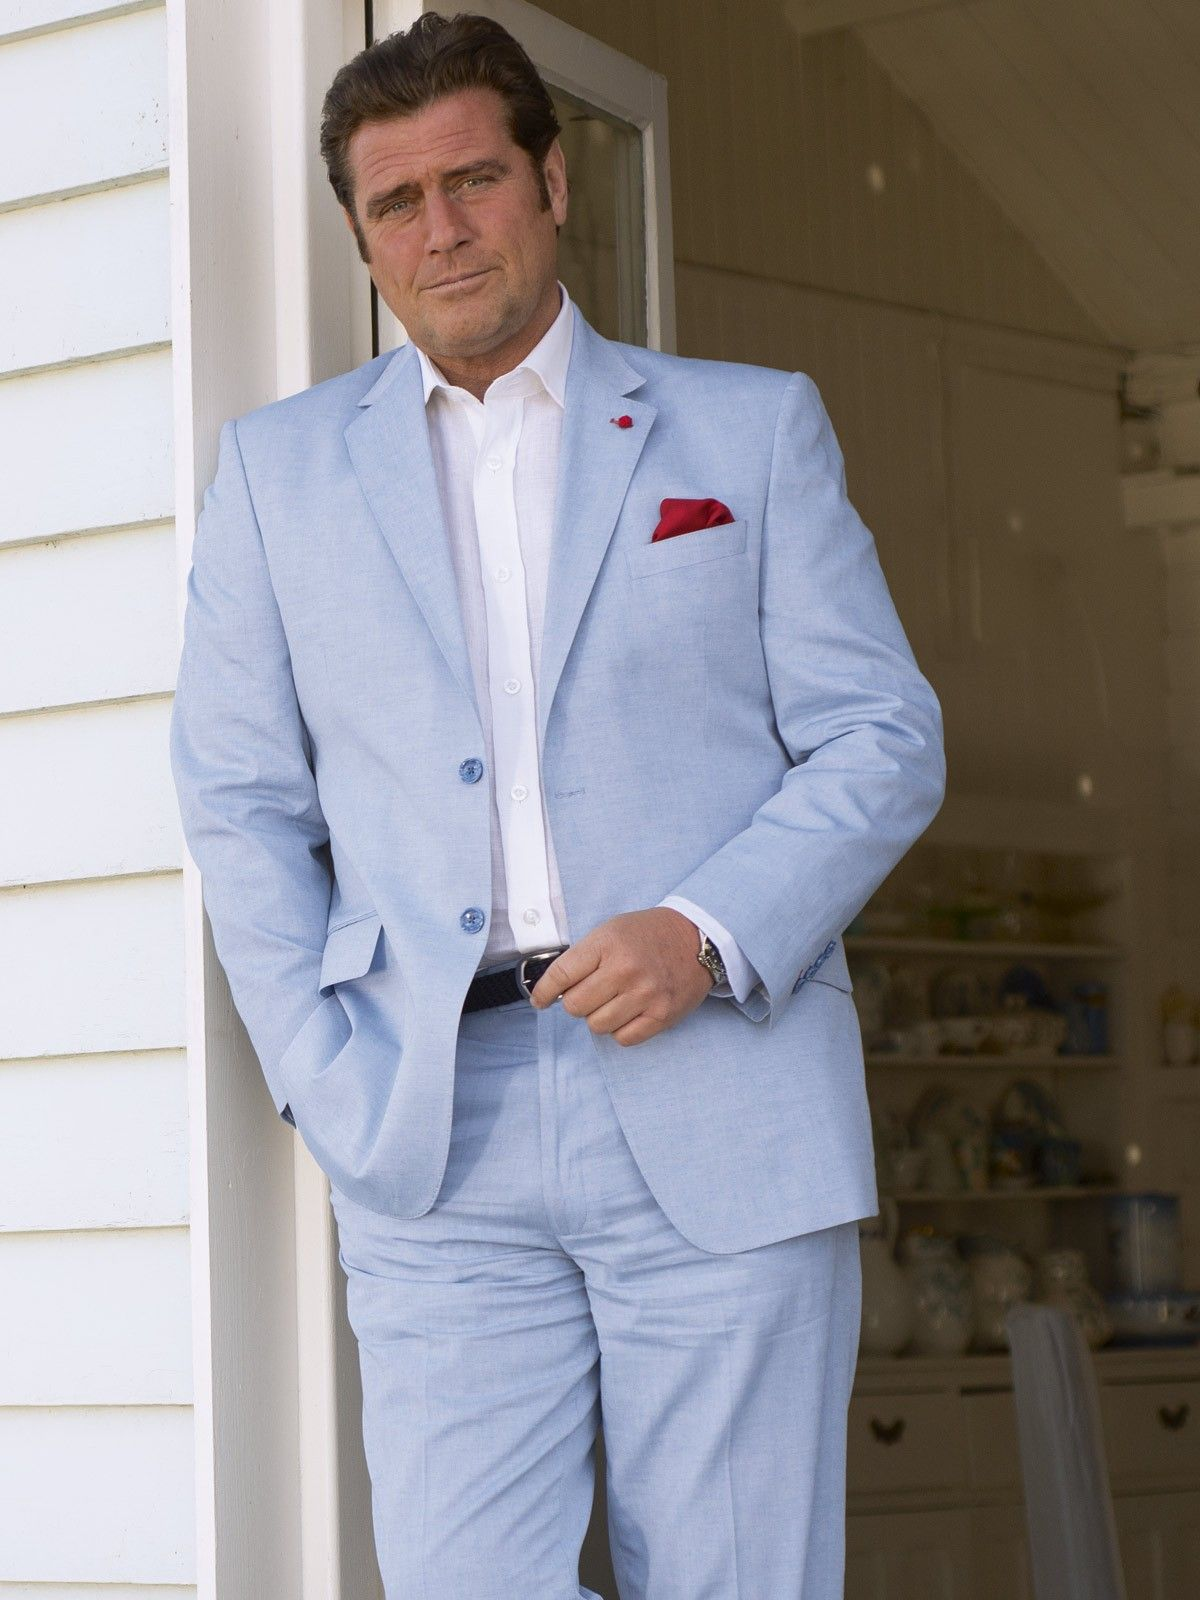 09e6aeb08b6 100% cotton linen suit in Sky Blue. As light as a linen suit but with  sharper lines for a smarter finish. The jacket is fully lined with colour  matched ...